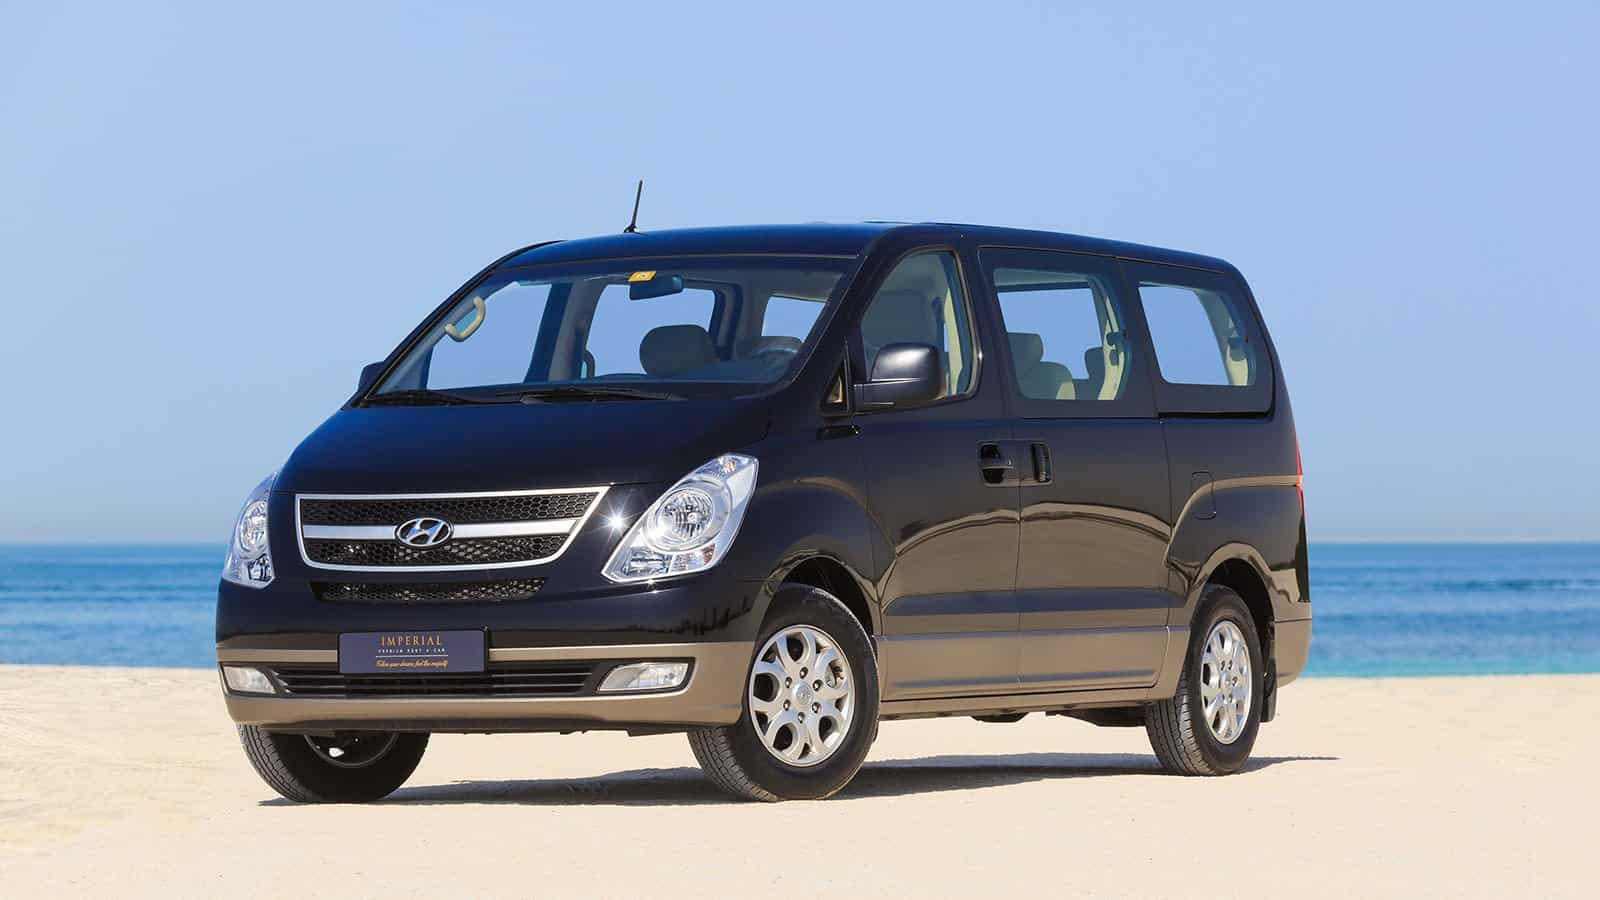 hyundai h1 dubai rent imperial premium rent a car. Black Bedroom Furniture Sets. Home Design Ideas